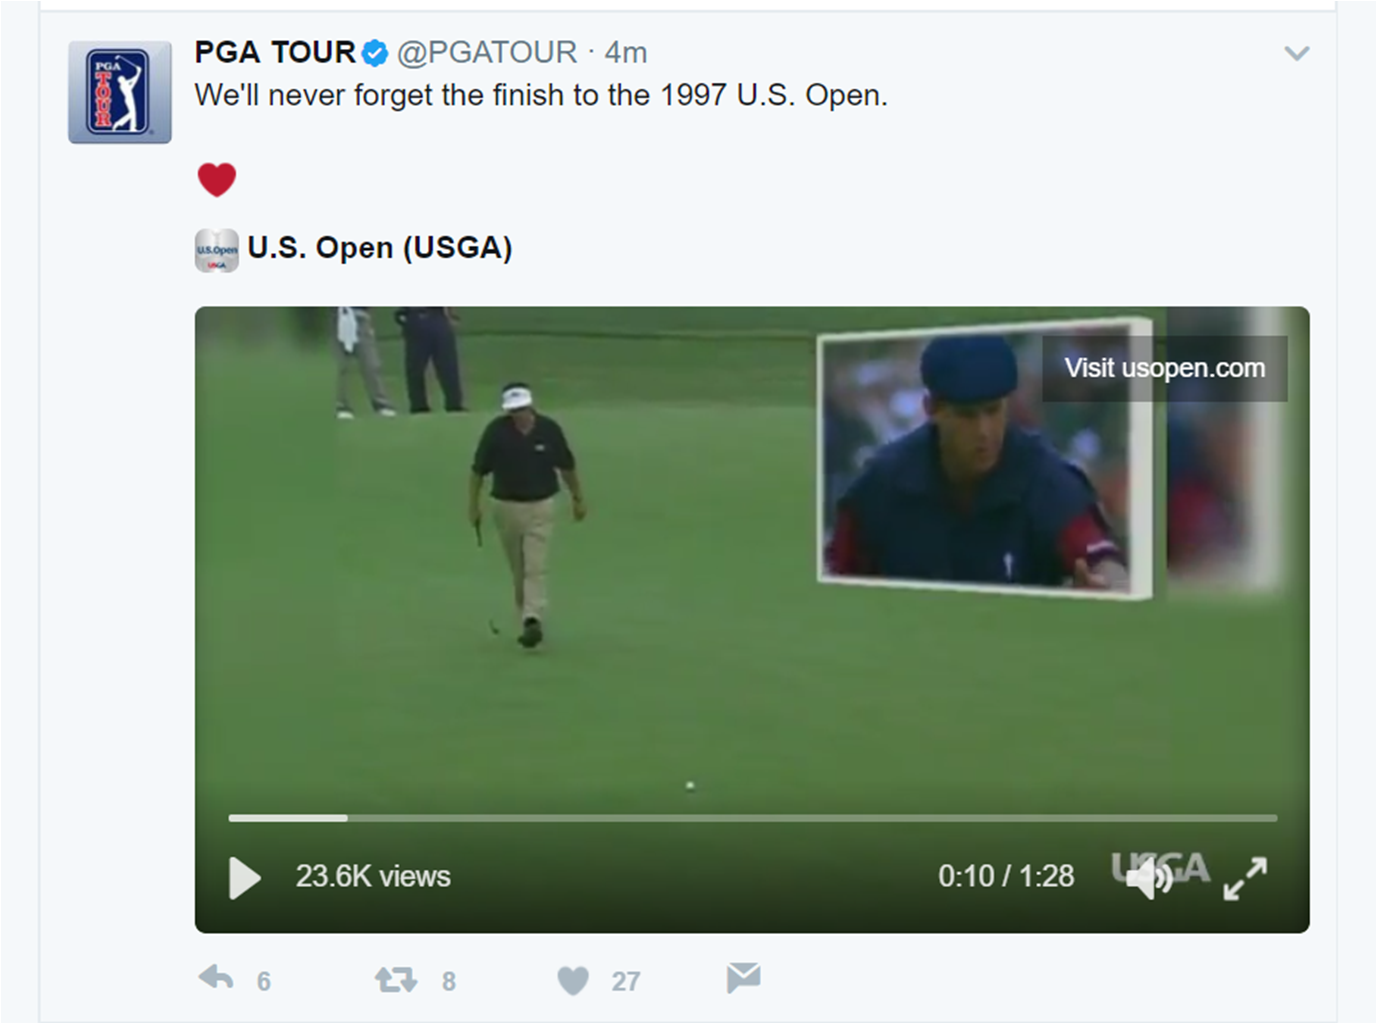 PGA Tour: US Open - Wide Open: Notes from the Ballwasher 4441f94798554aee7e6a69a8640baa68eeb7883d7fc7e56e7823c2c5fa623715